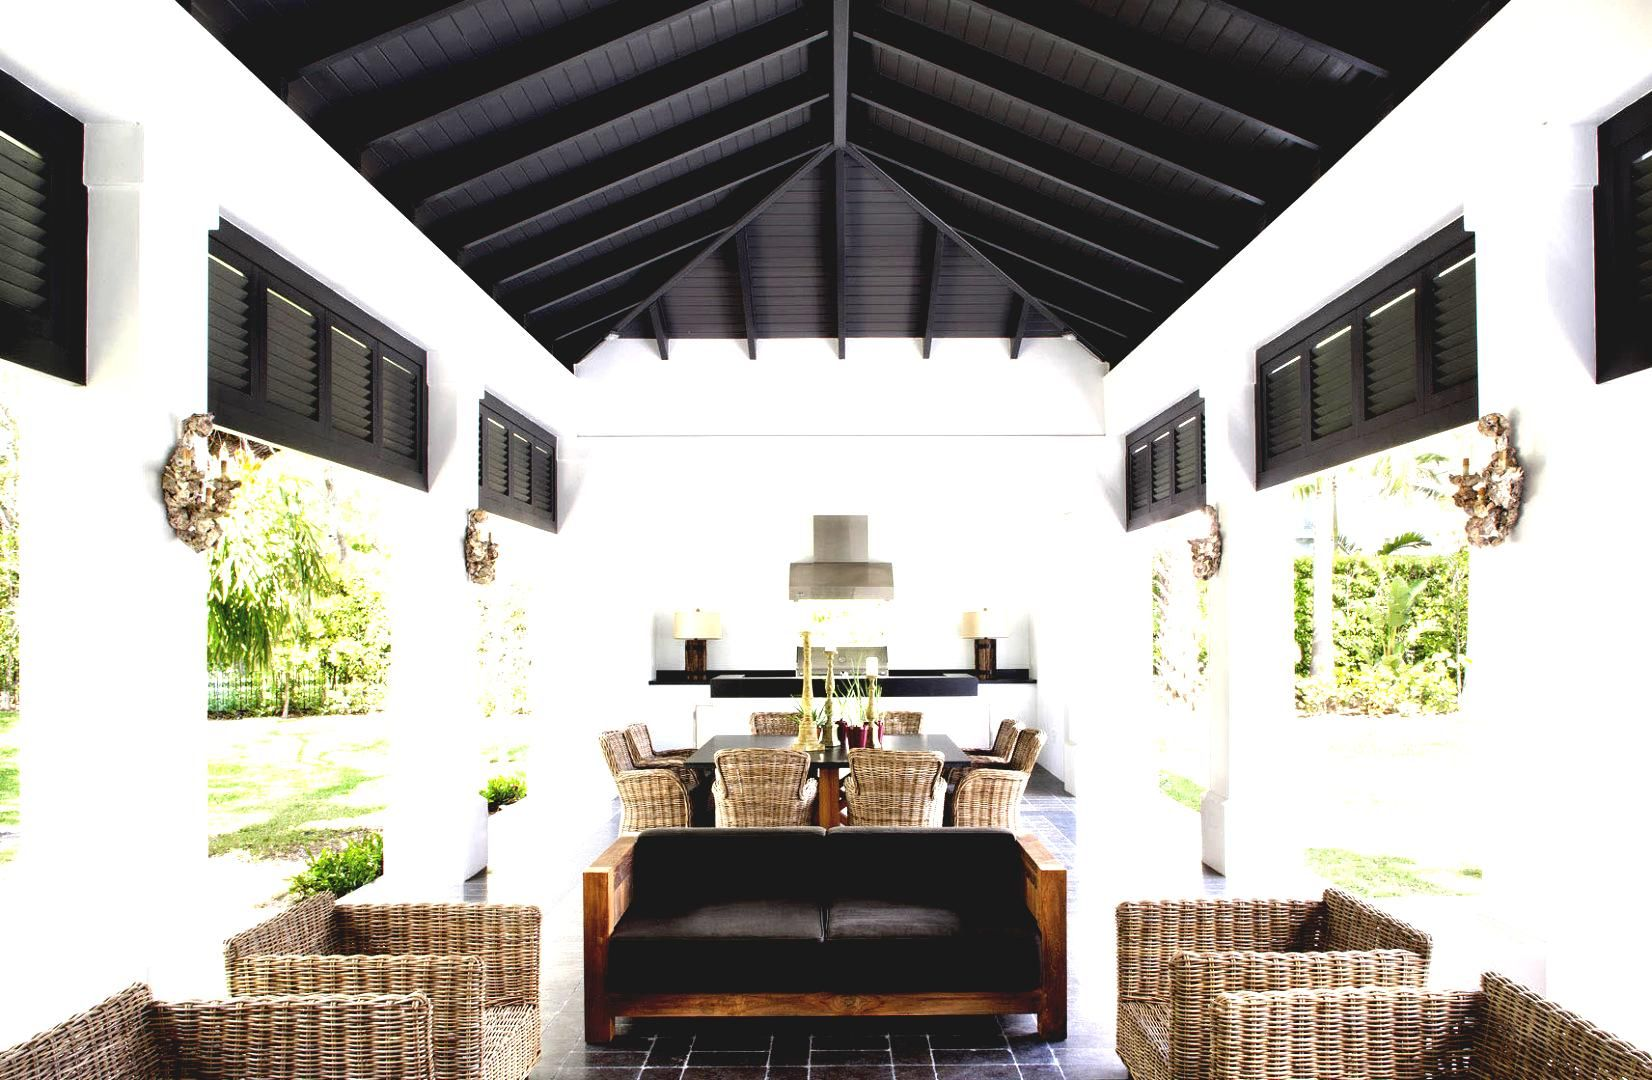 Contemporary Home Pool Room Ideas Ensign - Home Decorating Ideas ...